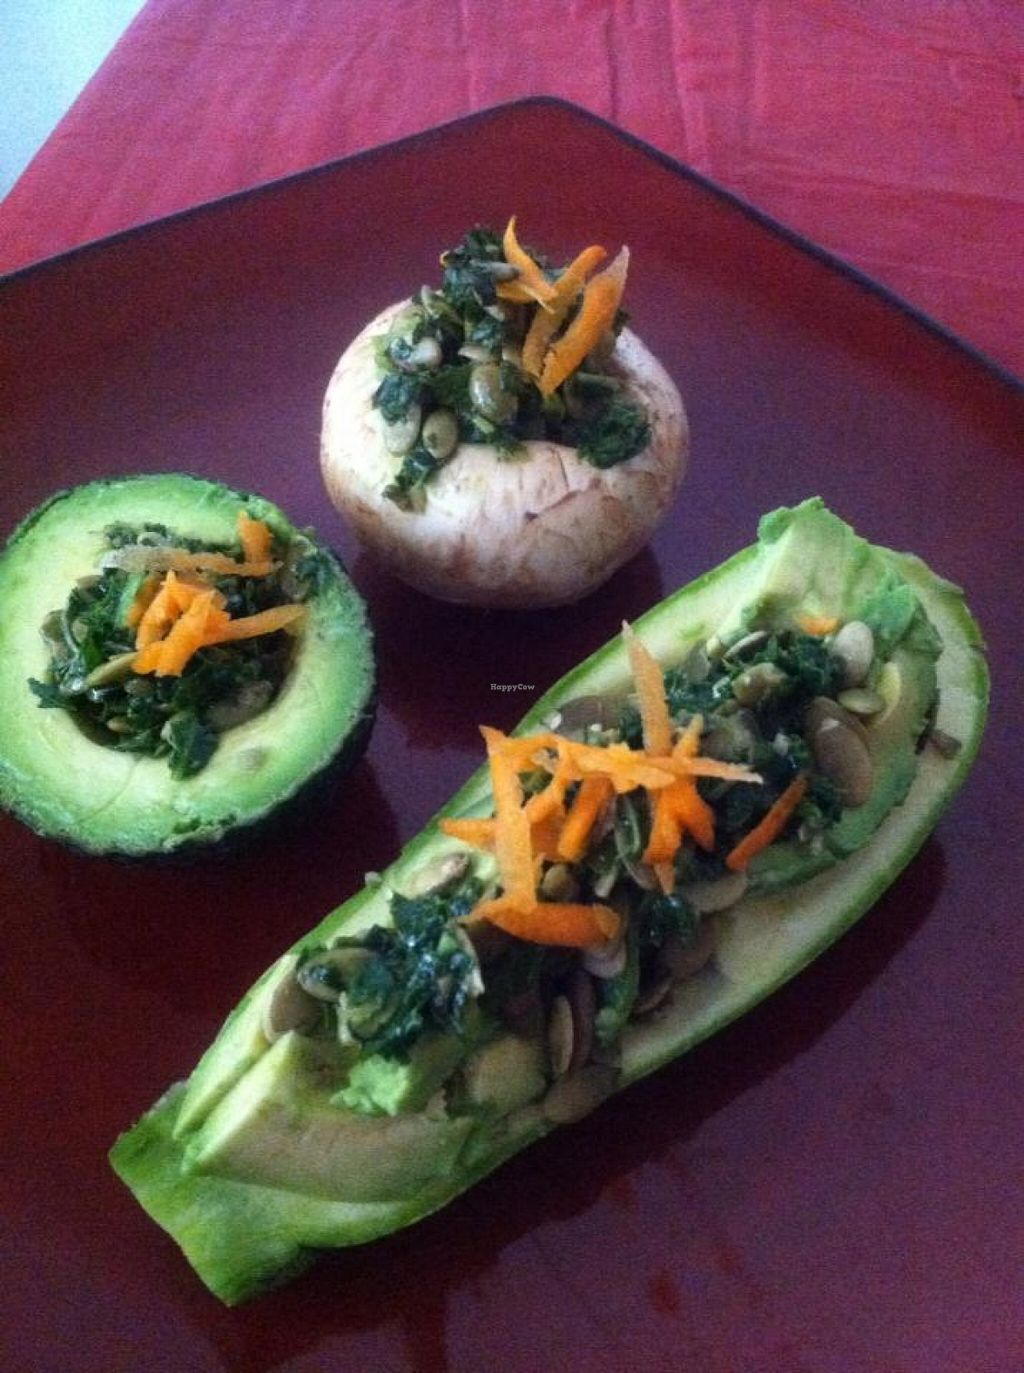 """Photo of Lotus World Foods  by <a href=""""/members/profile/community"""">community</a> <br/>Organic Raw Vegan Pumpkin Seed Cheez stuffed Veggies with Kale <br/> April 24, 2016  - <a href='/contact/abuse/image/71912/146058'>Report</a>"""